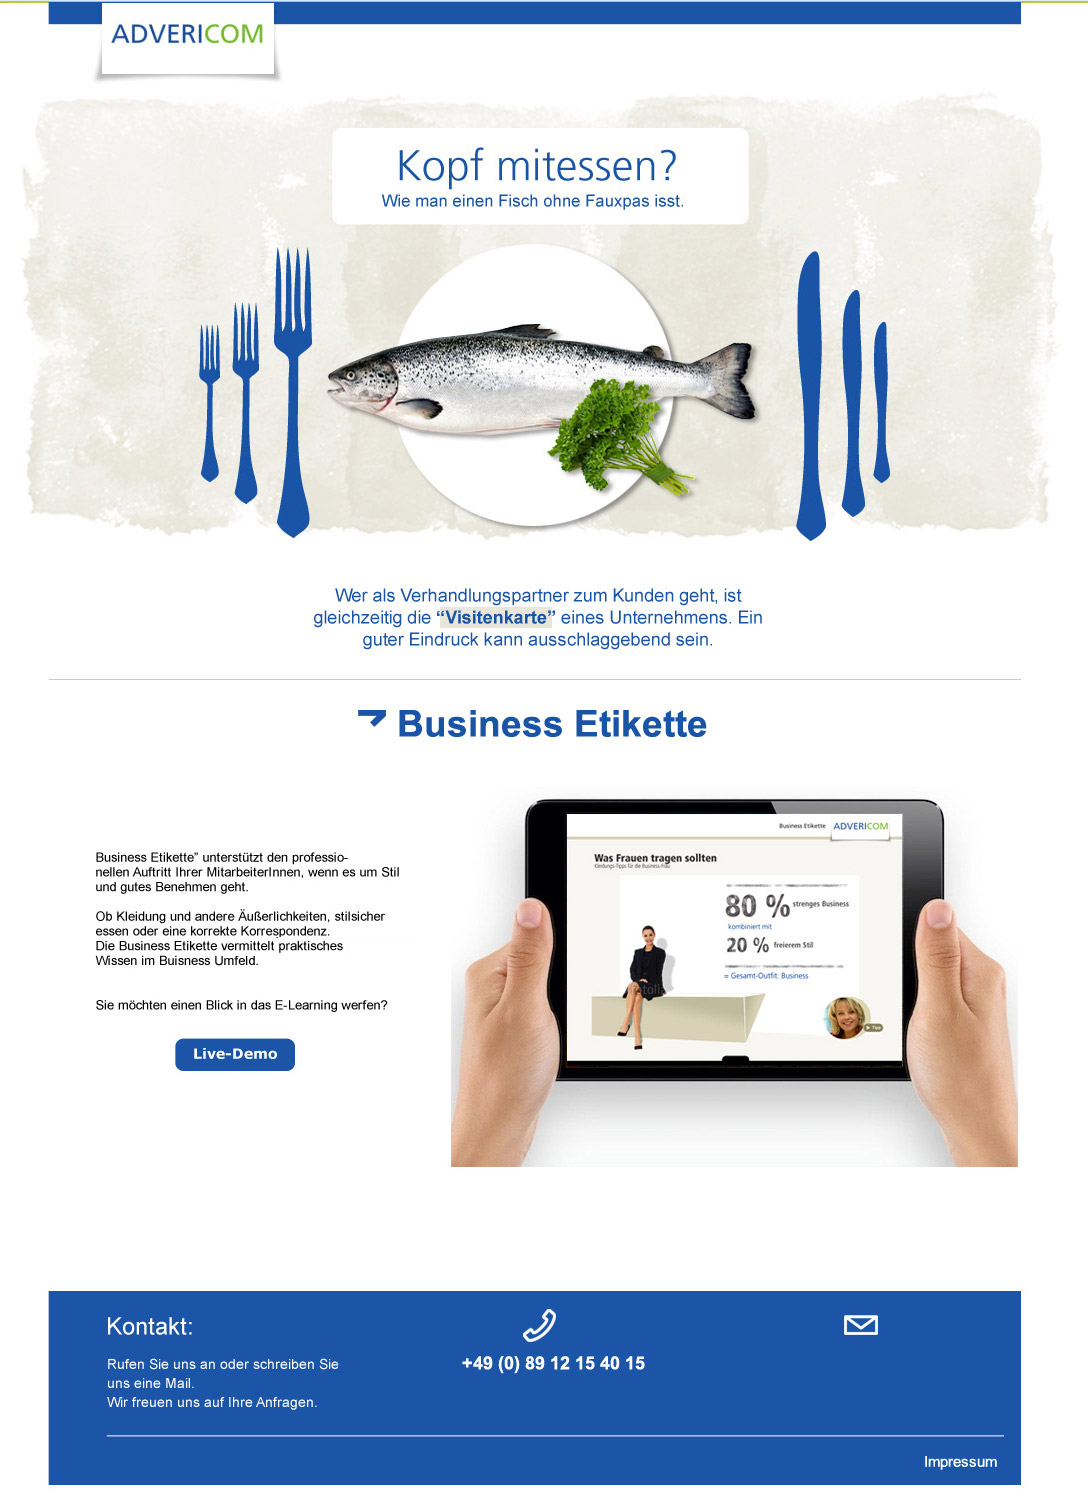 Landingpage Business Etikette